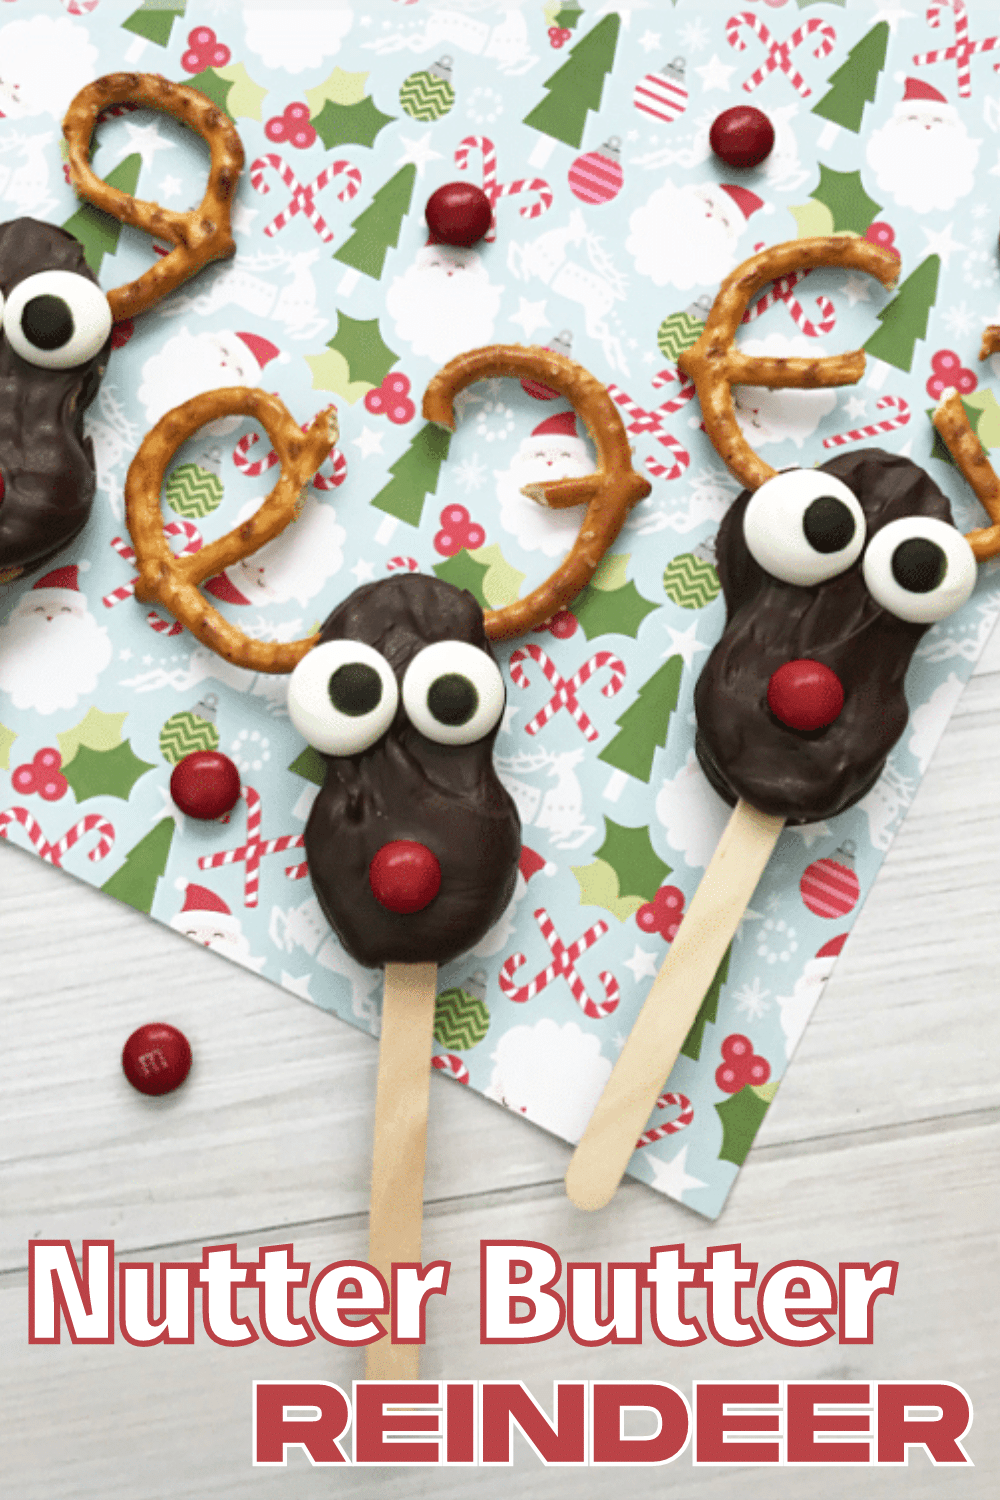 These Nutter Butter Reindeer are so cute! They're super easy to make too. Great treat for Christmas. #Christmas #reindeer #NutterButter #funfood via @wondermomwannab